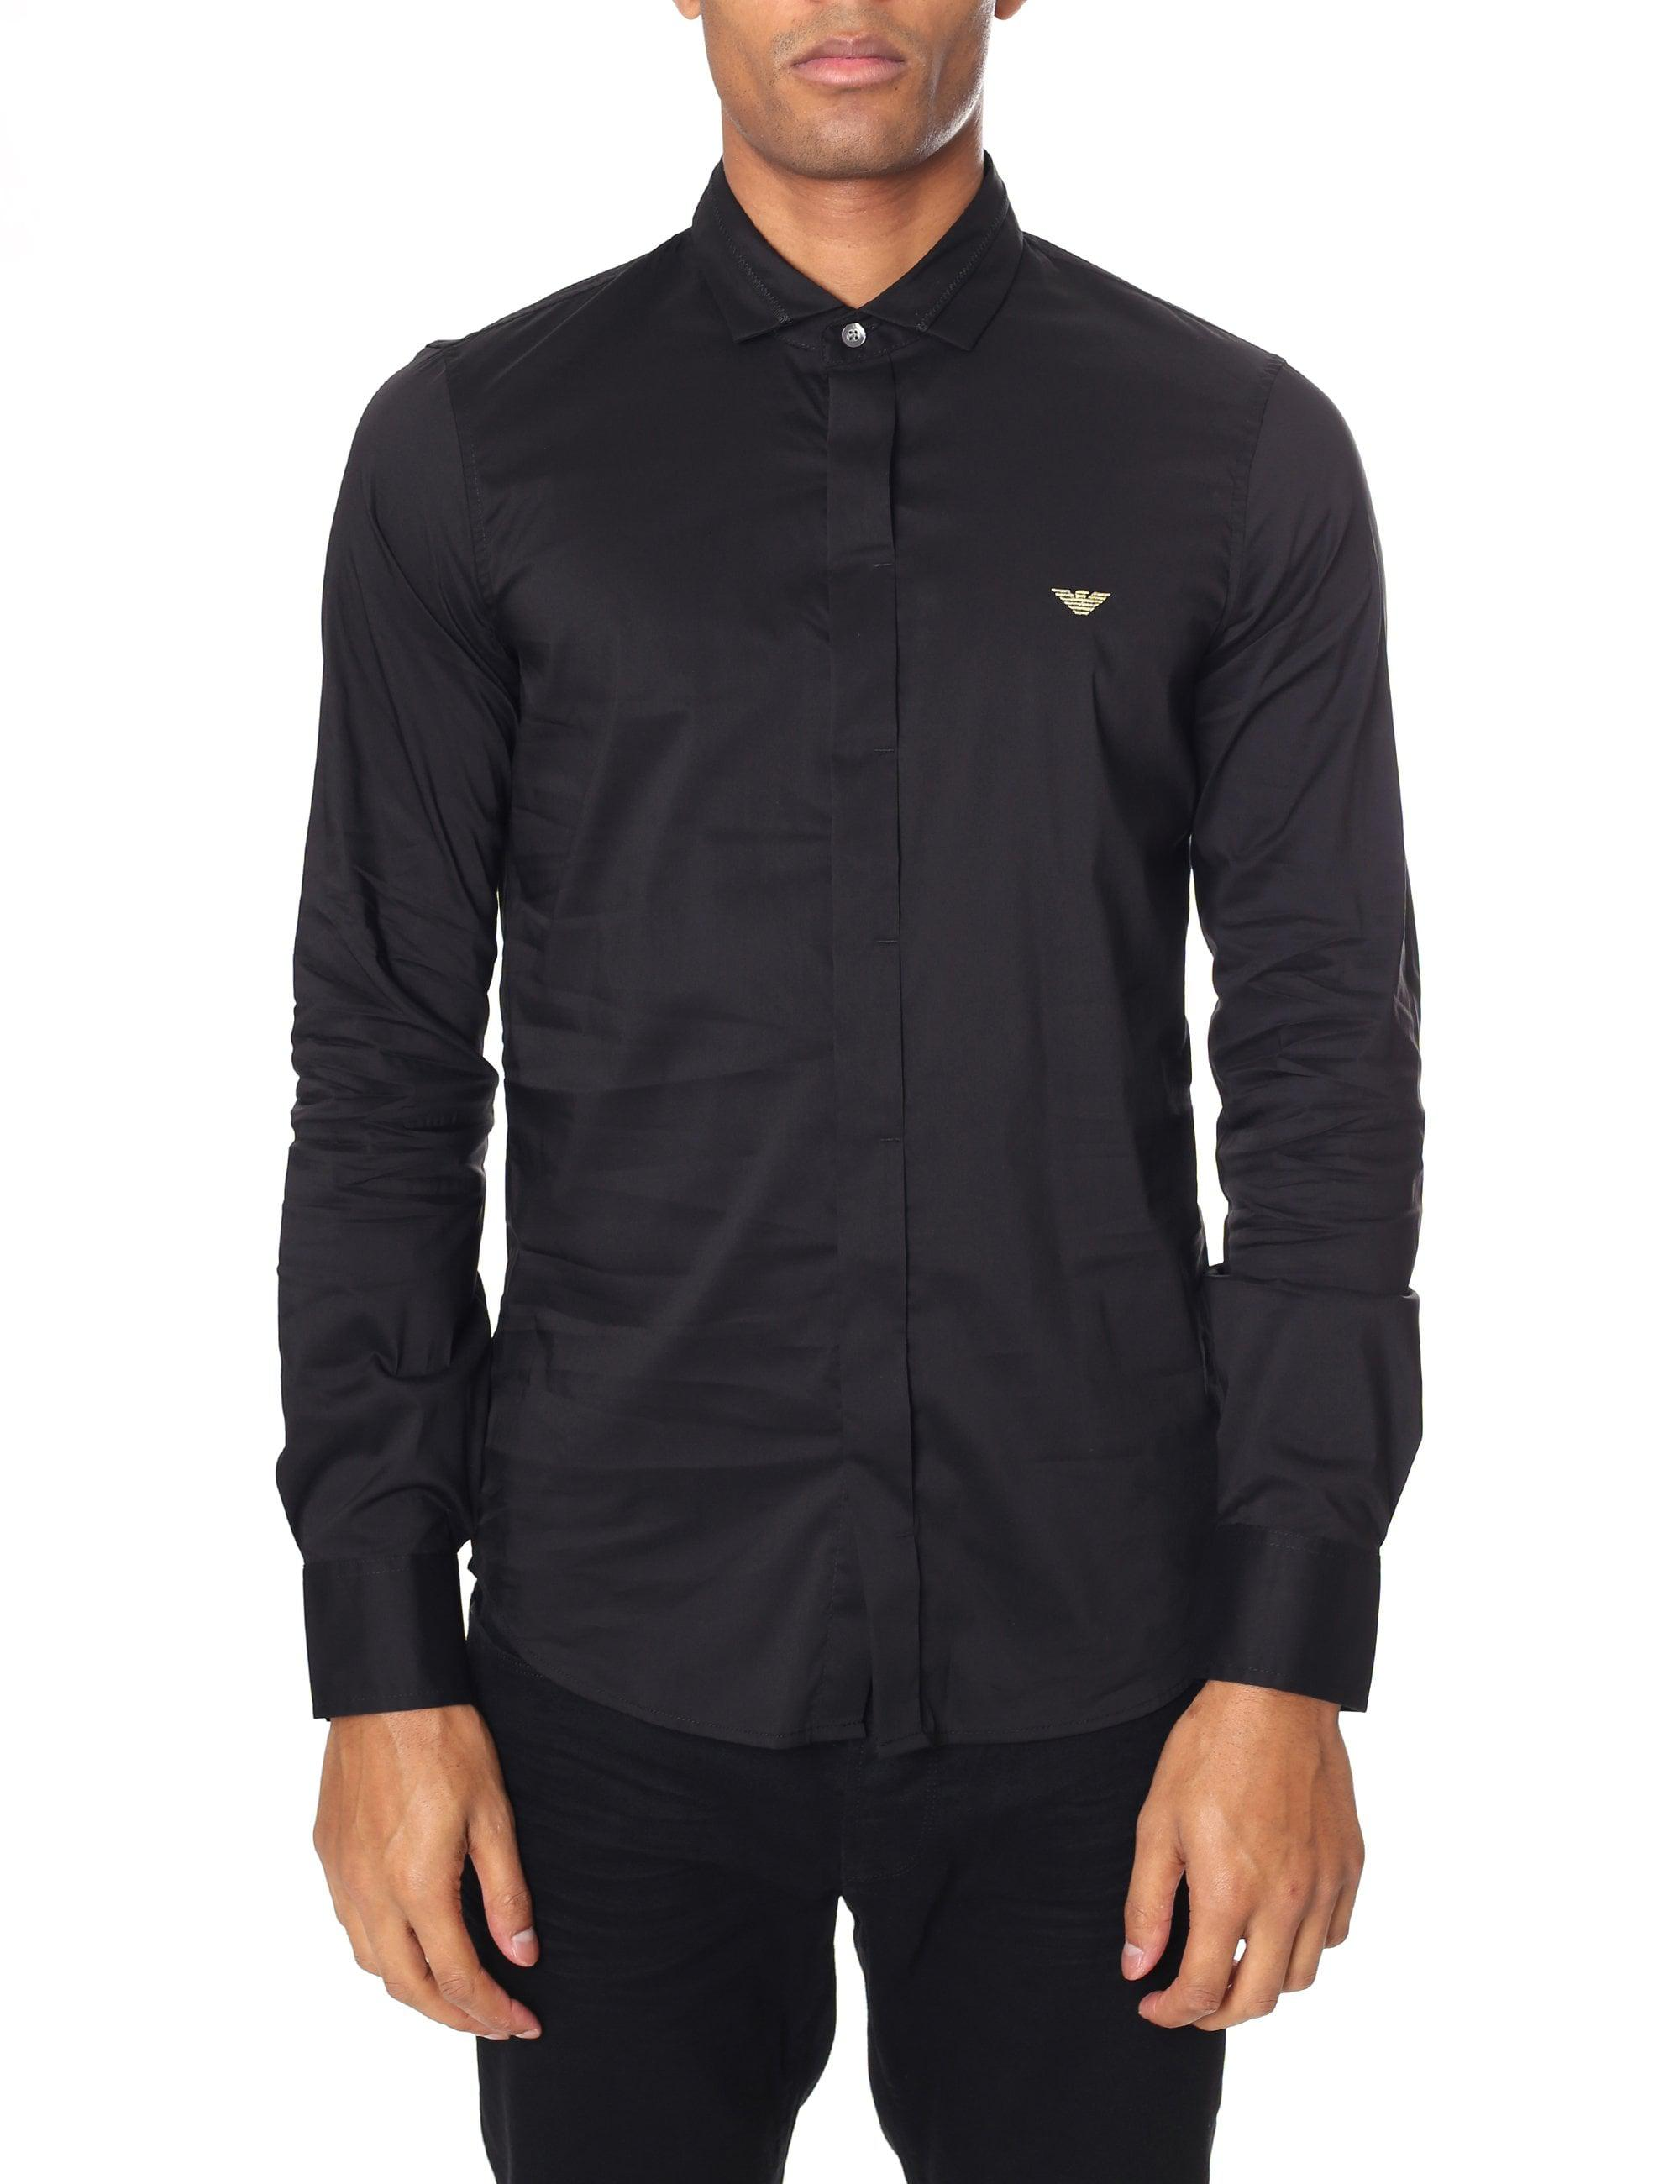 b3f9eea9d0 Armani Jeans Knitted Collar Long Sleeve Shirt in Black for Men - Lyst